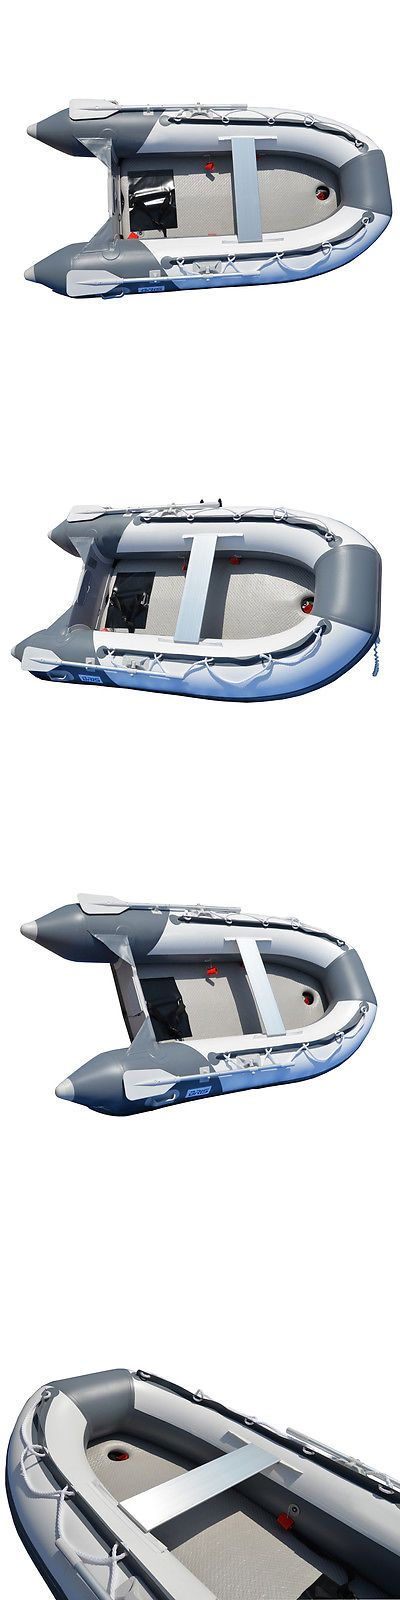 Inflatables 87090: 8.2 Ft Inflatable Boat Inflatable Pontoon Dinghy Raft Boat With Air-Deck Floor -> BUY IT NOW ONLY: $692.1 on eBay!